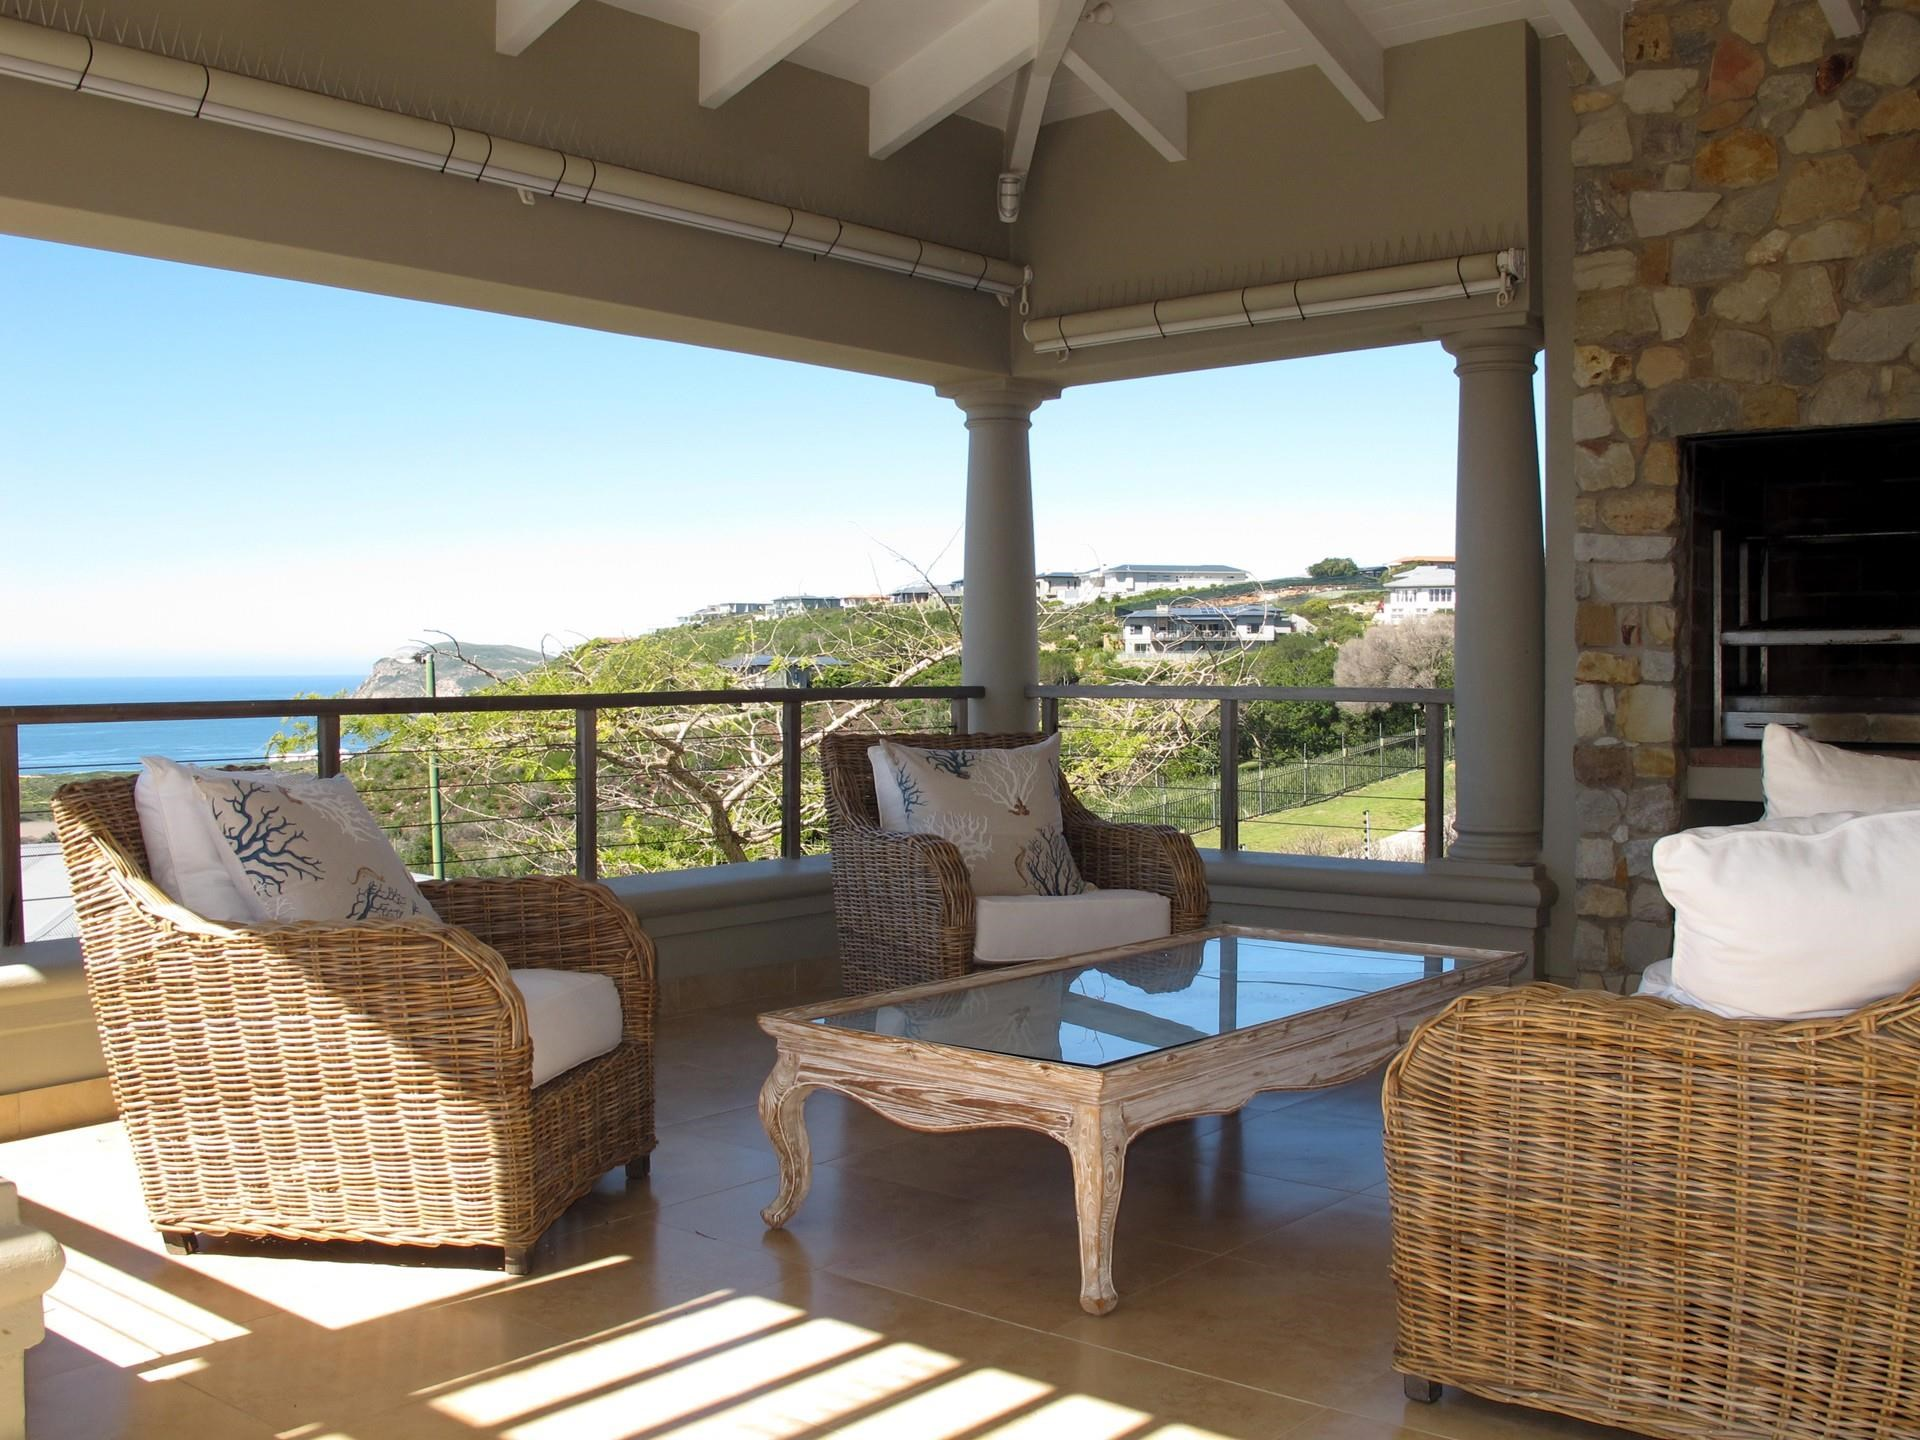 5 Bedroom House for Sale in Whale Rock